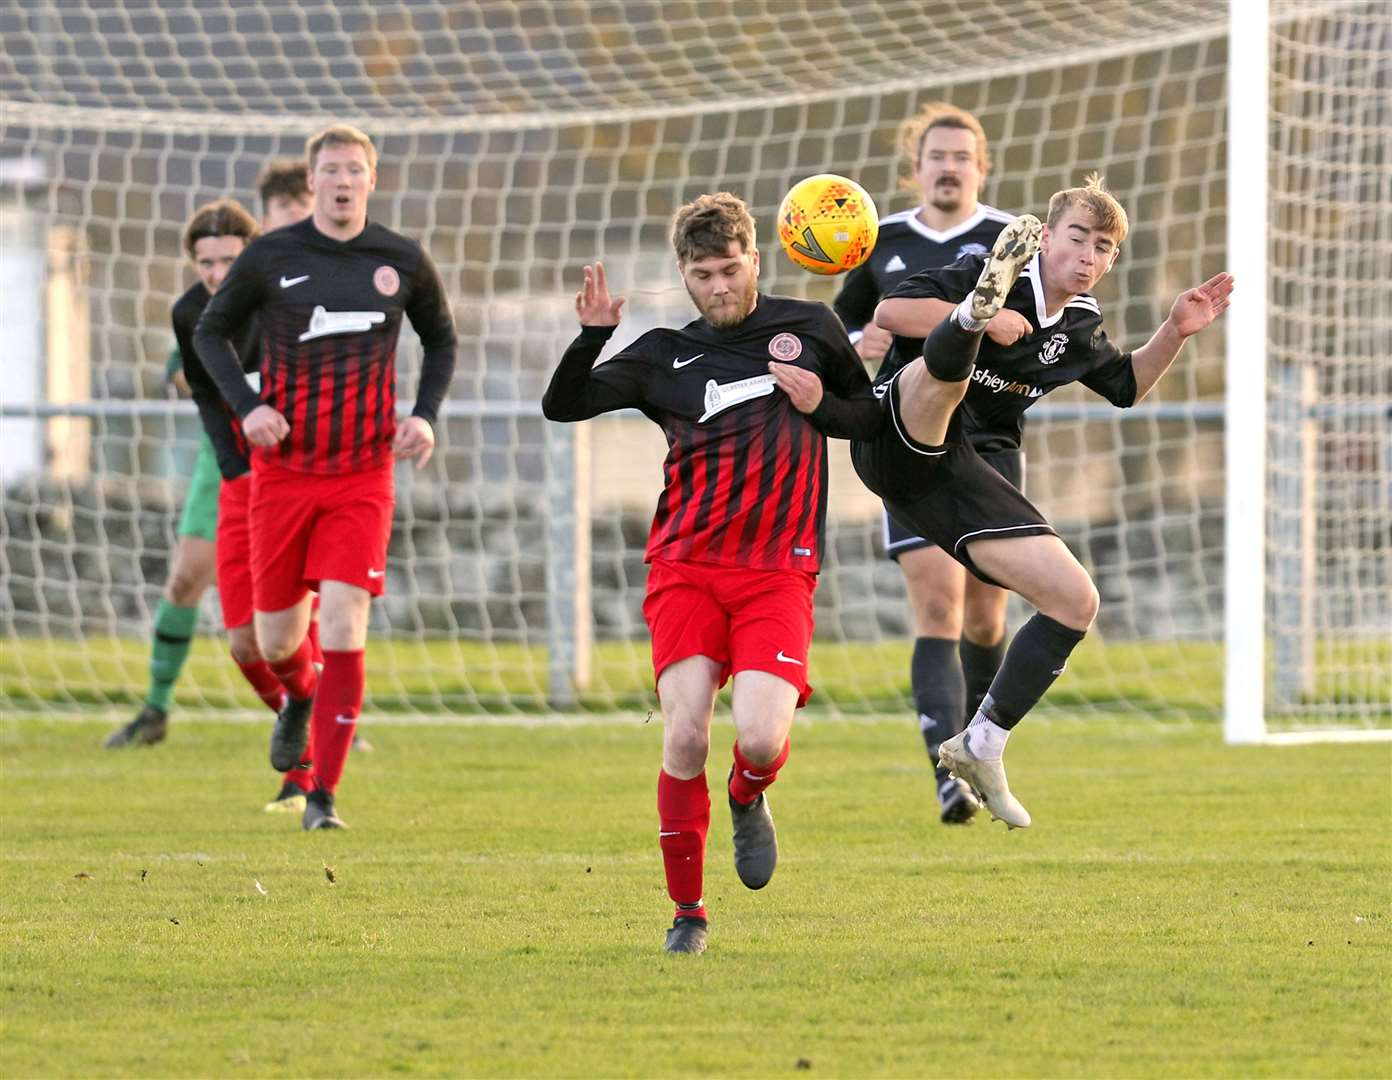 Thurso's Cameron Montgomery in full flight against Chris Green of Halkirk United in a North Caledonian League derby in October 2020. Picture: James Gunn